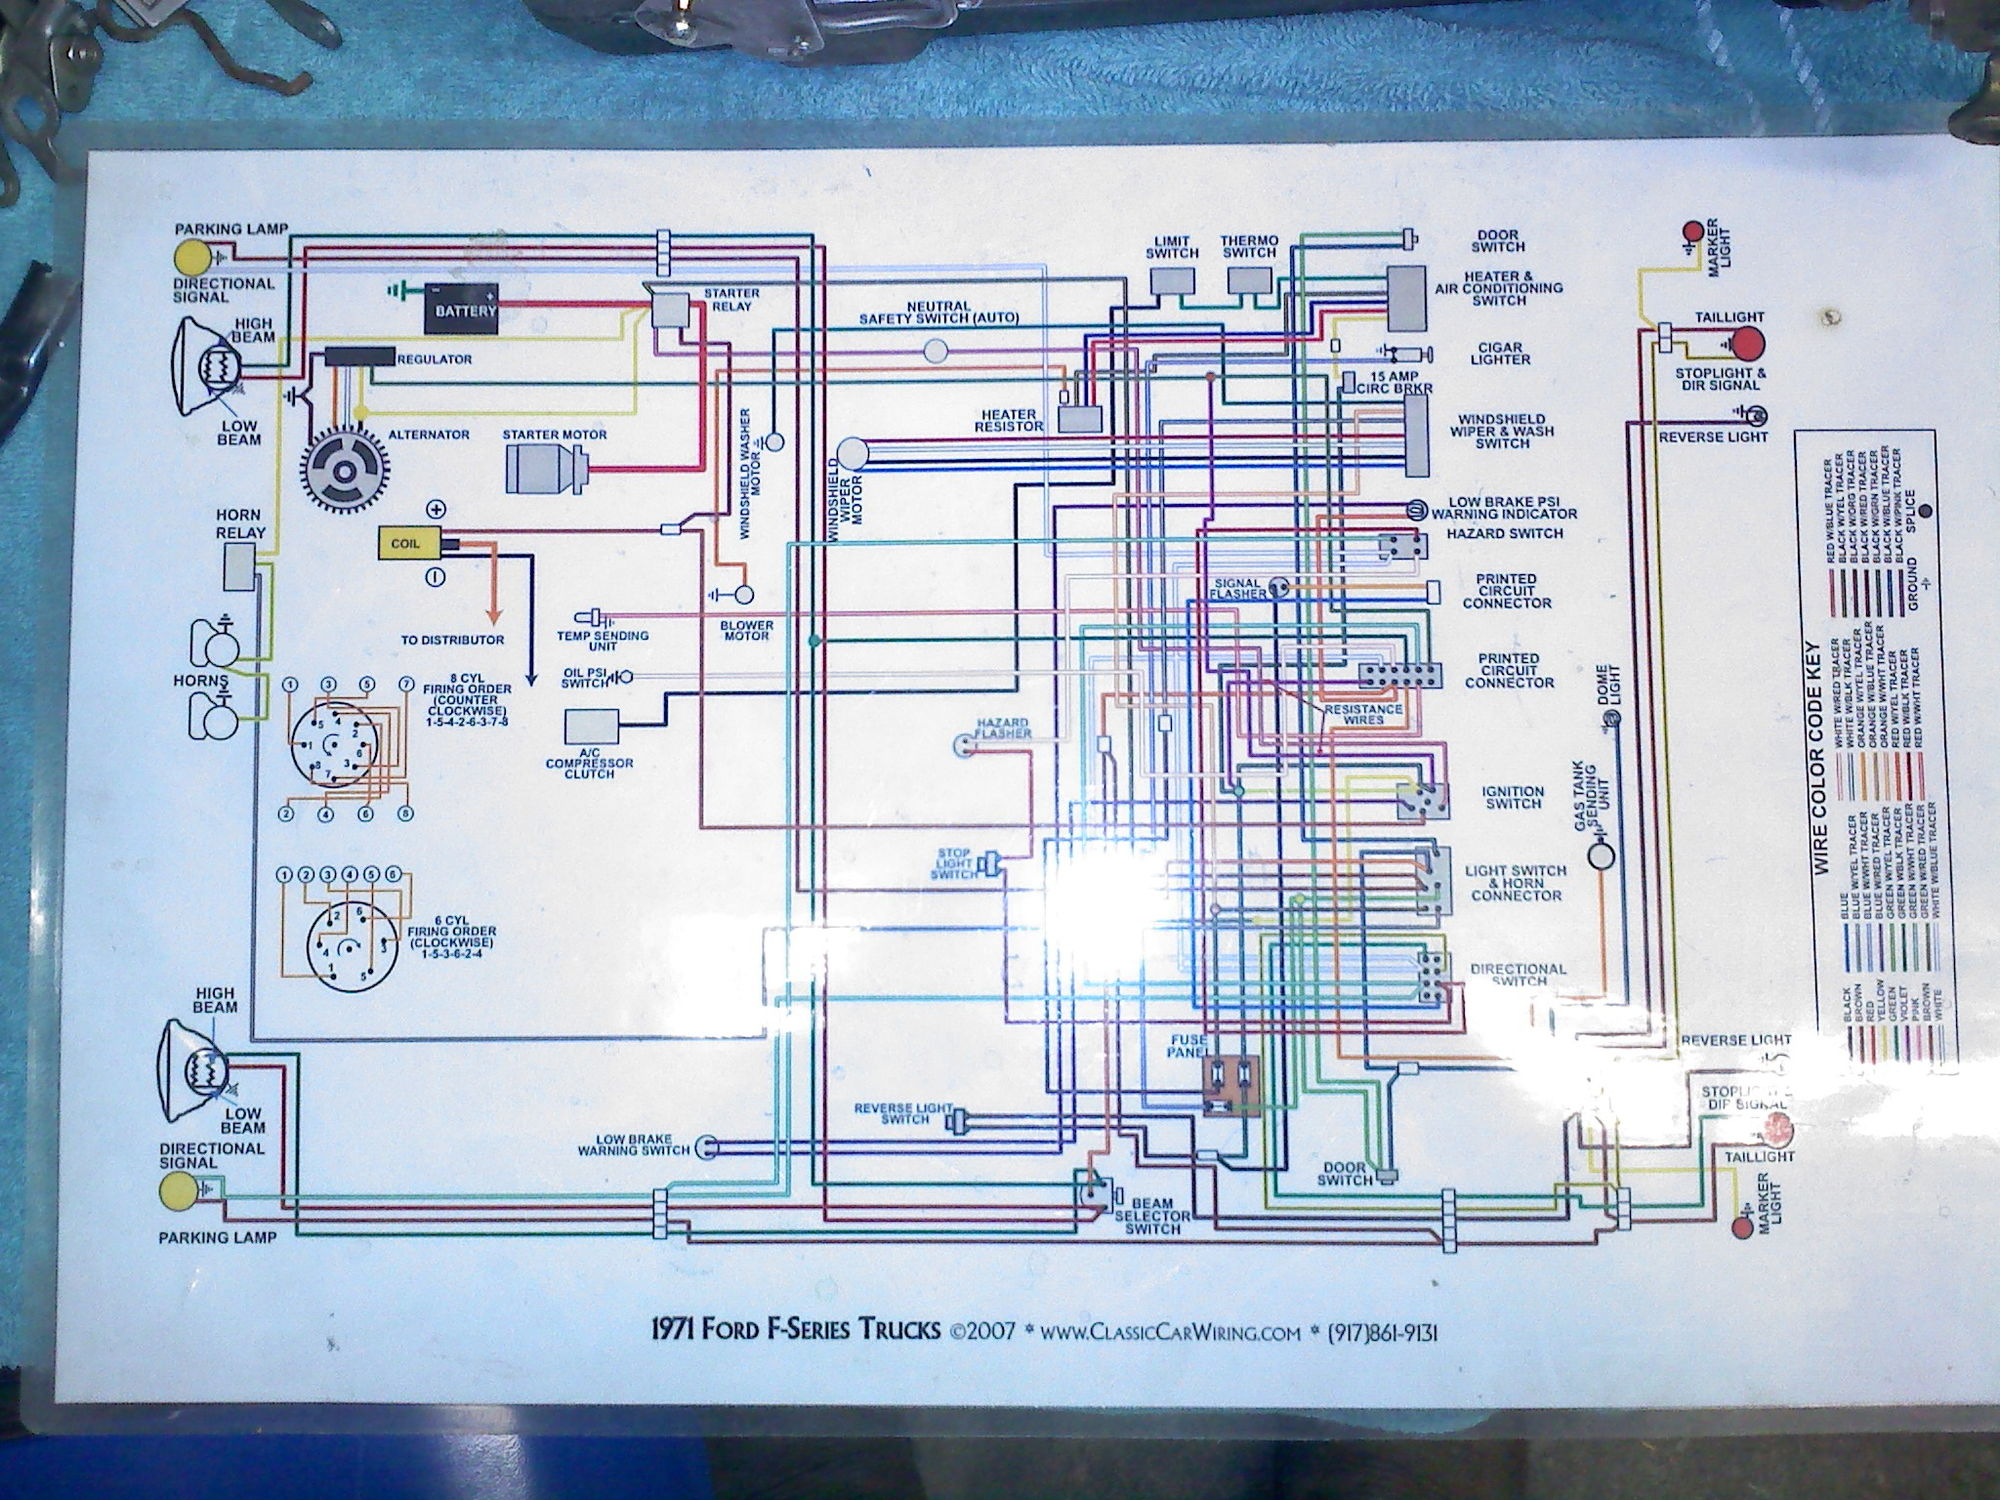 1971 Wiring Diagram - Page 2